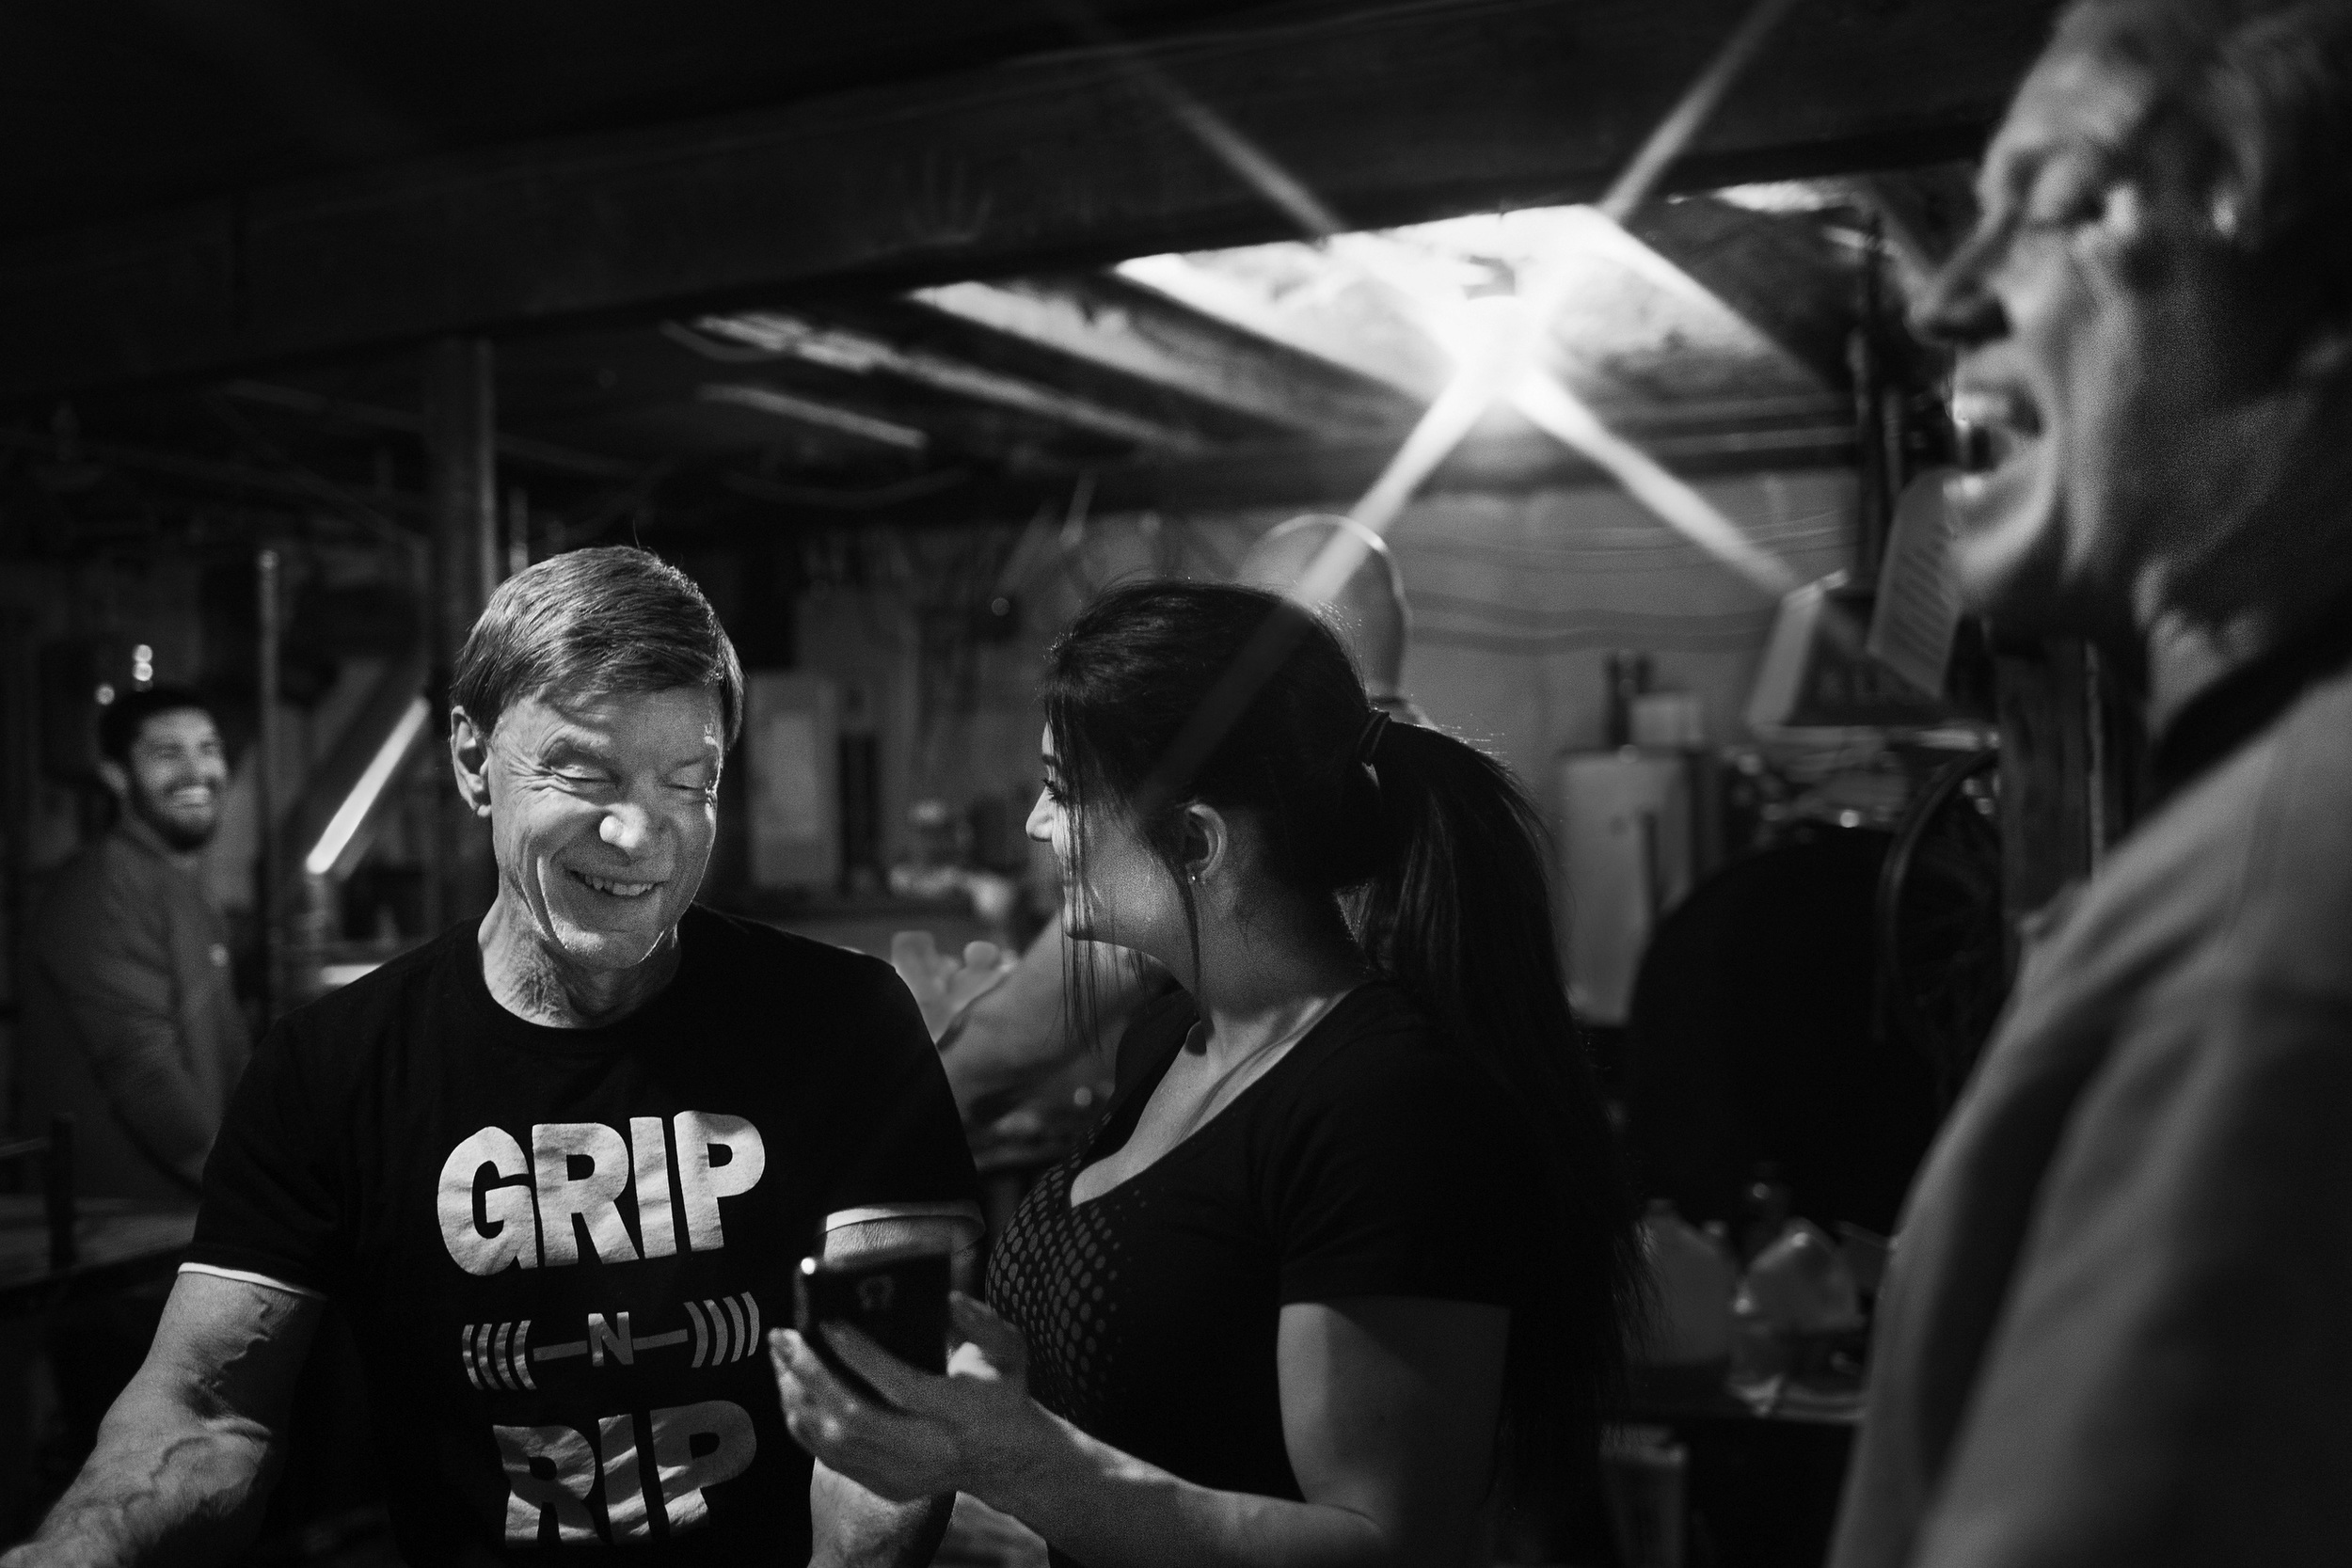 Devio and other arm wrestlers laugh at videos on fellow arm wrestler Valerie Beach's phone on March 3, 2016, in Fitzsimmons' basement in West Bridgewater, Massachusetts. (Photo by Adam Glanzman/GroundTruth)